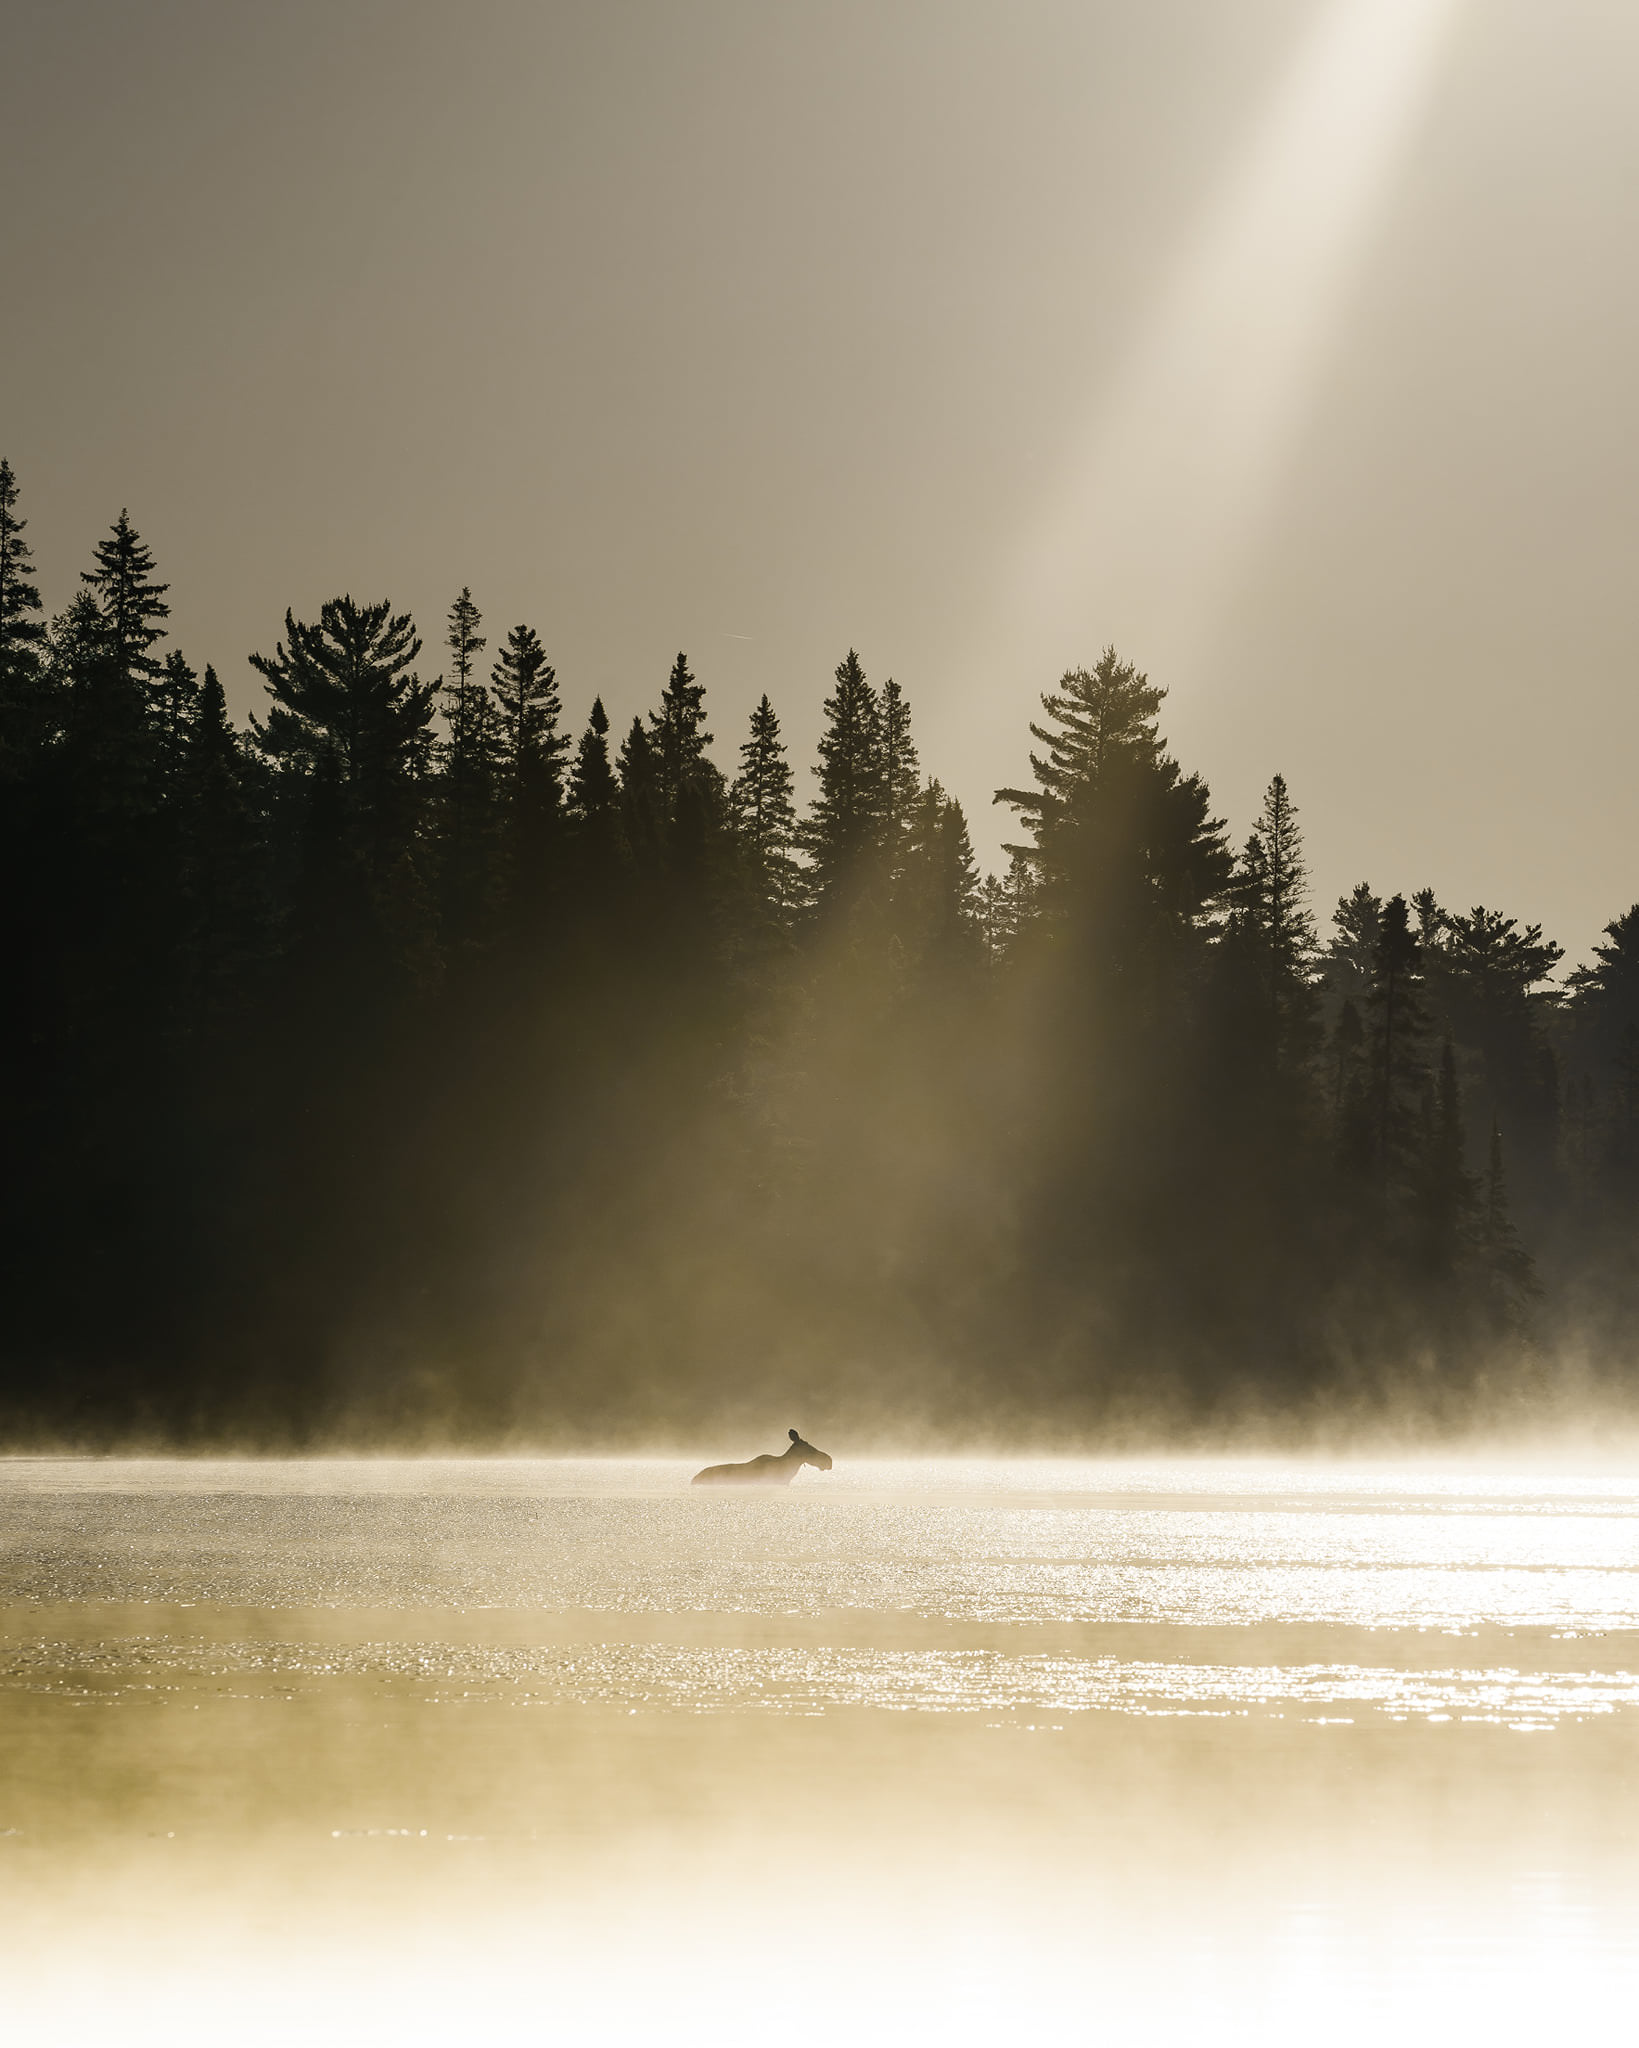 a moose walks crosses a river on a sunny day